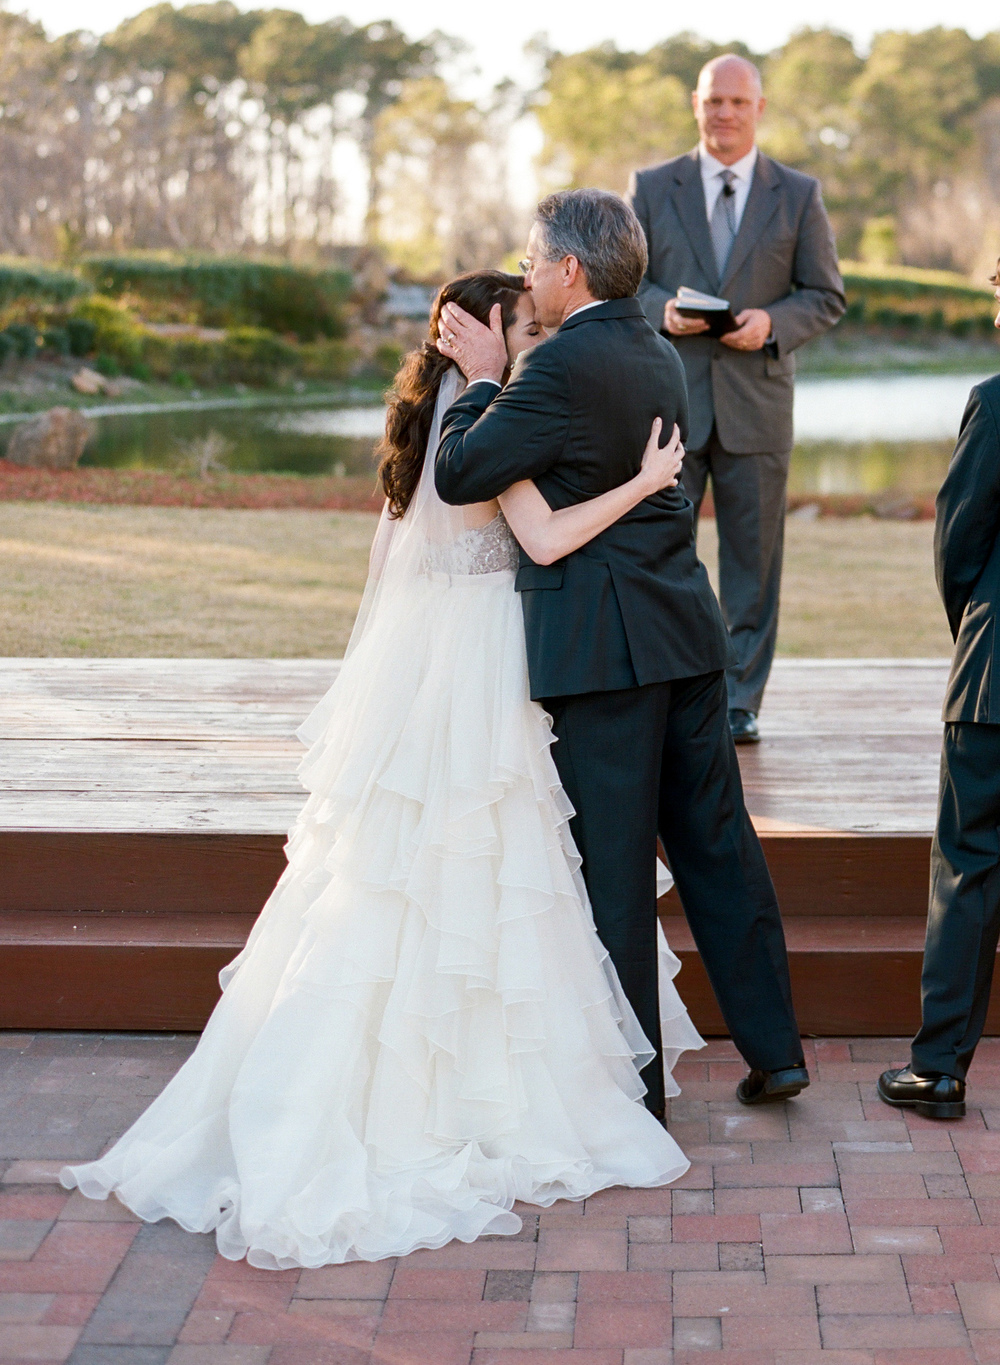 Dana-Fernandez-Photography-Tuscan-Courtyard-Houston-Wedding-Photographer-Film-Texas-18.jpg